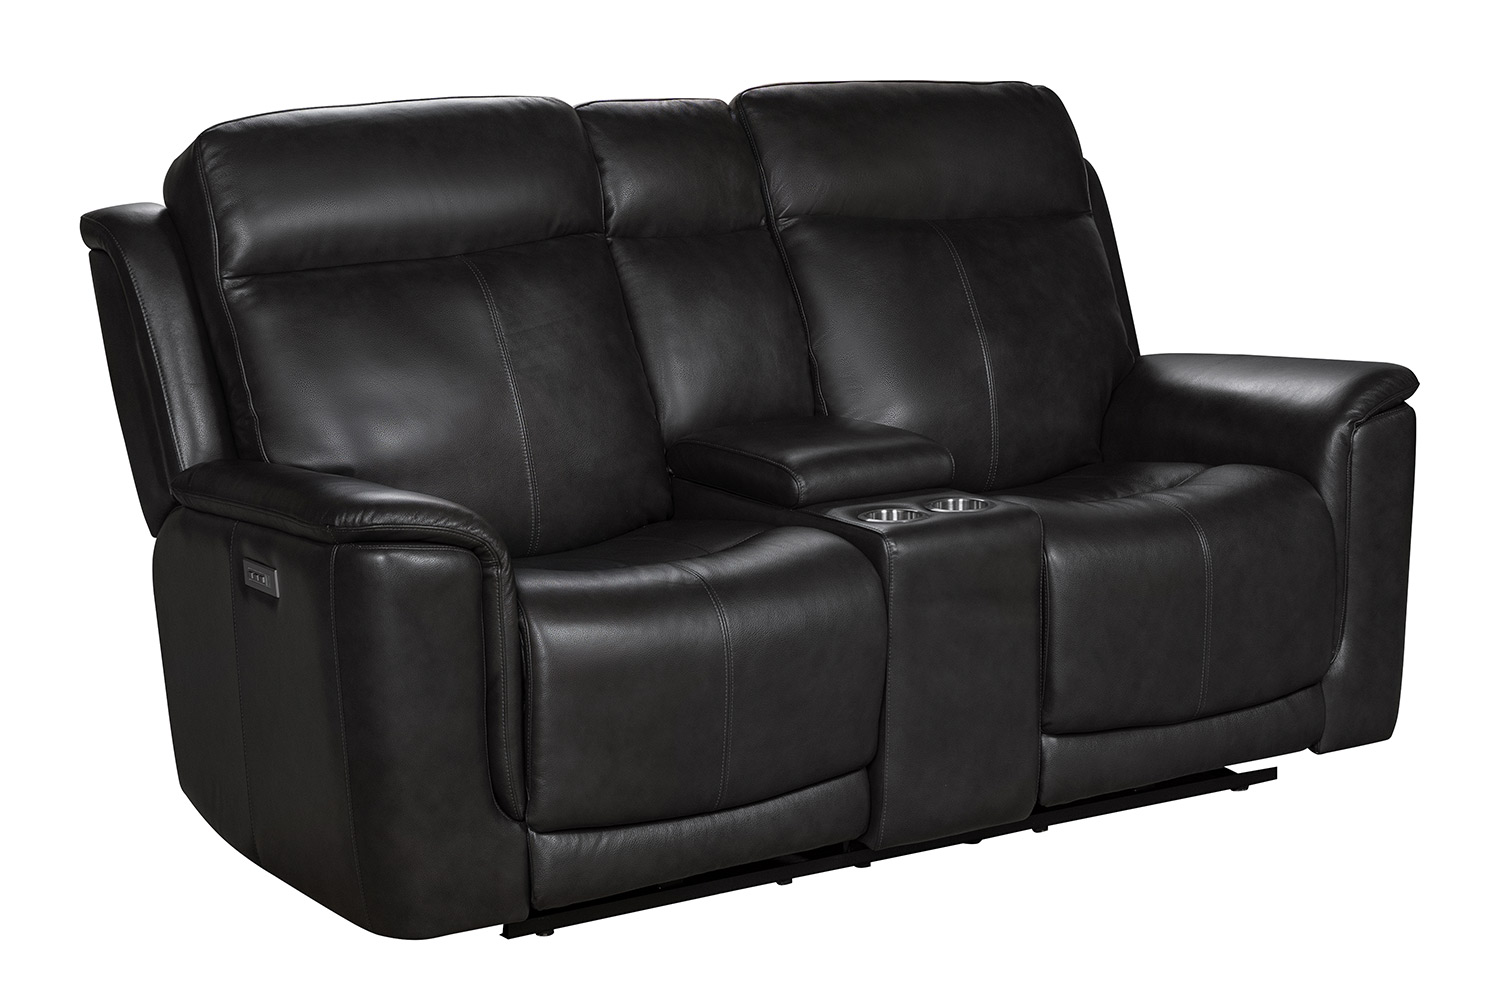 Barcalounger Burbank Power Reclining Console Loveseat with Power Head Rests and Lumbar - Matteo Smokey Gray/Leather match